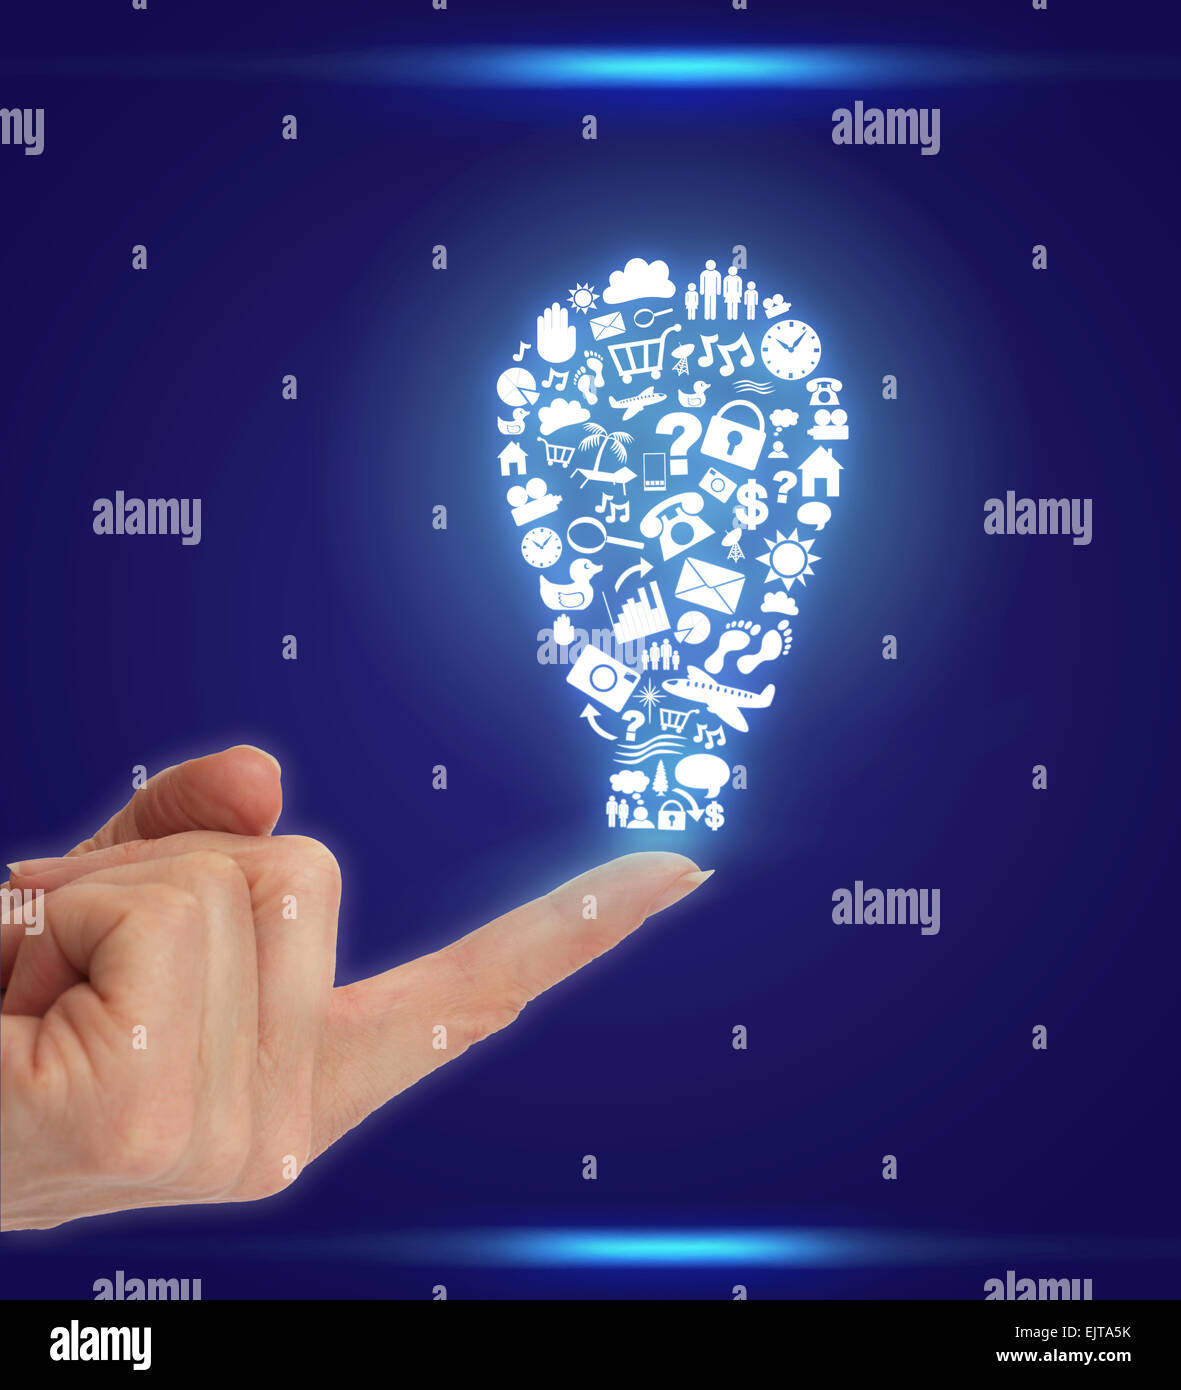 Hand with Icons shaped as Lightbulb - Stock Image